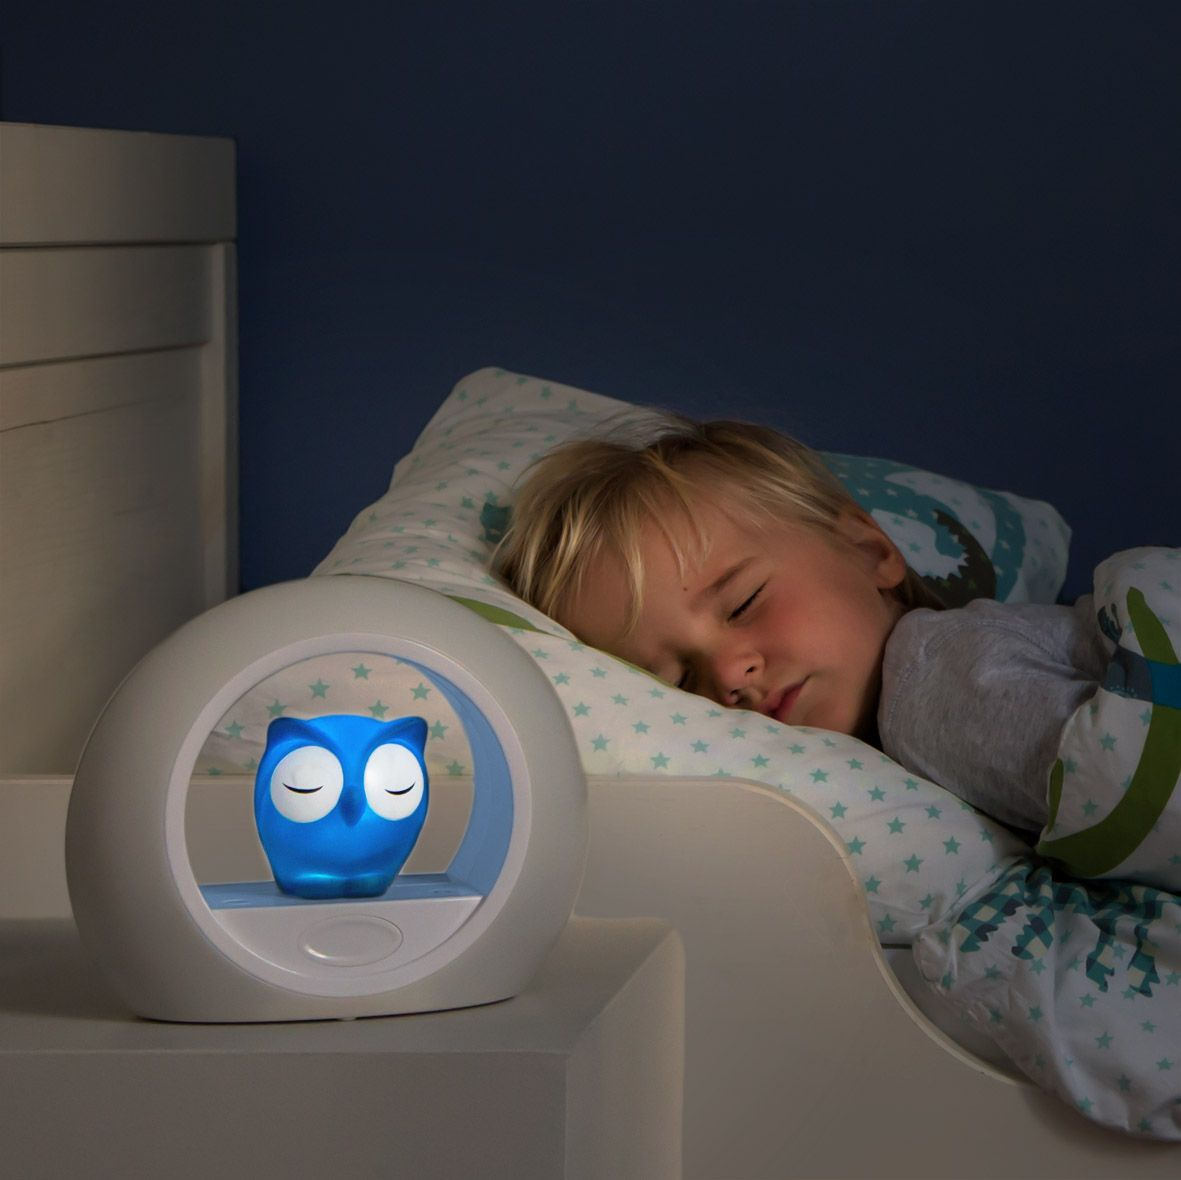 How To Keep Your Child In Their Own Bed Project Junior Night Light Kids Toddler Night Light Baby Night Light